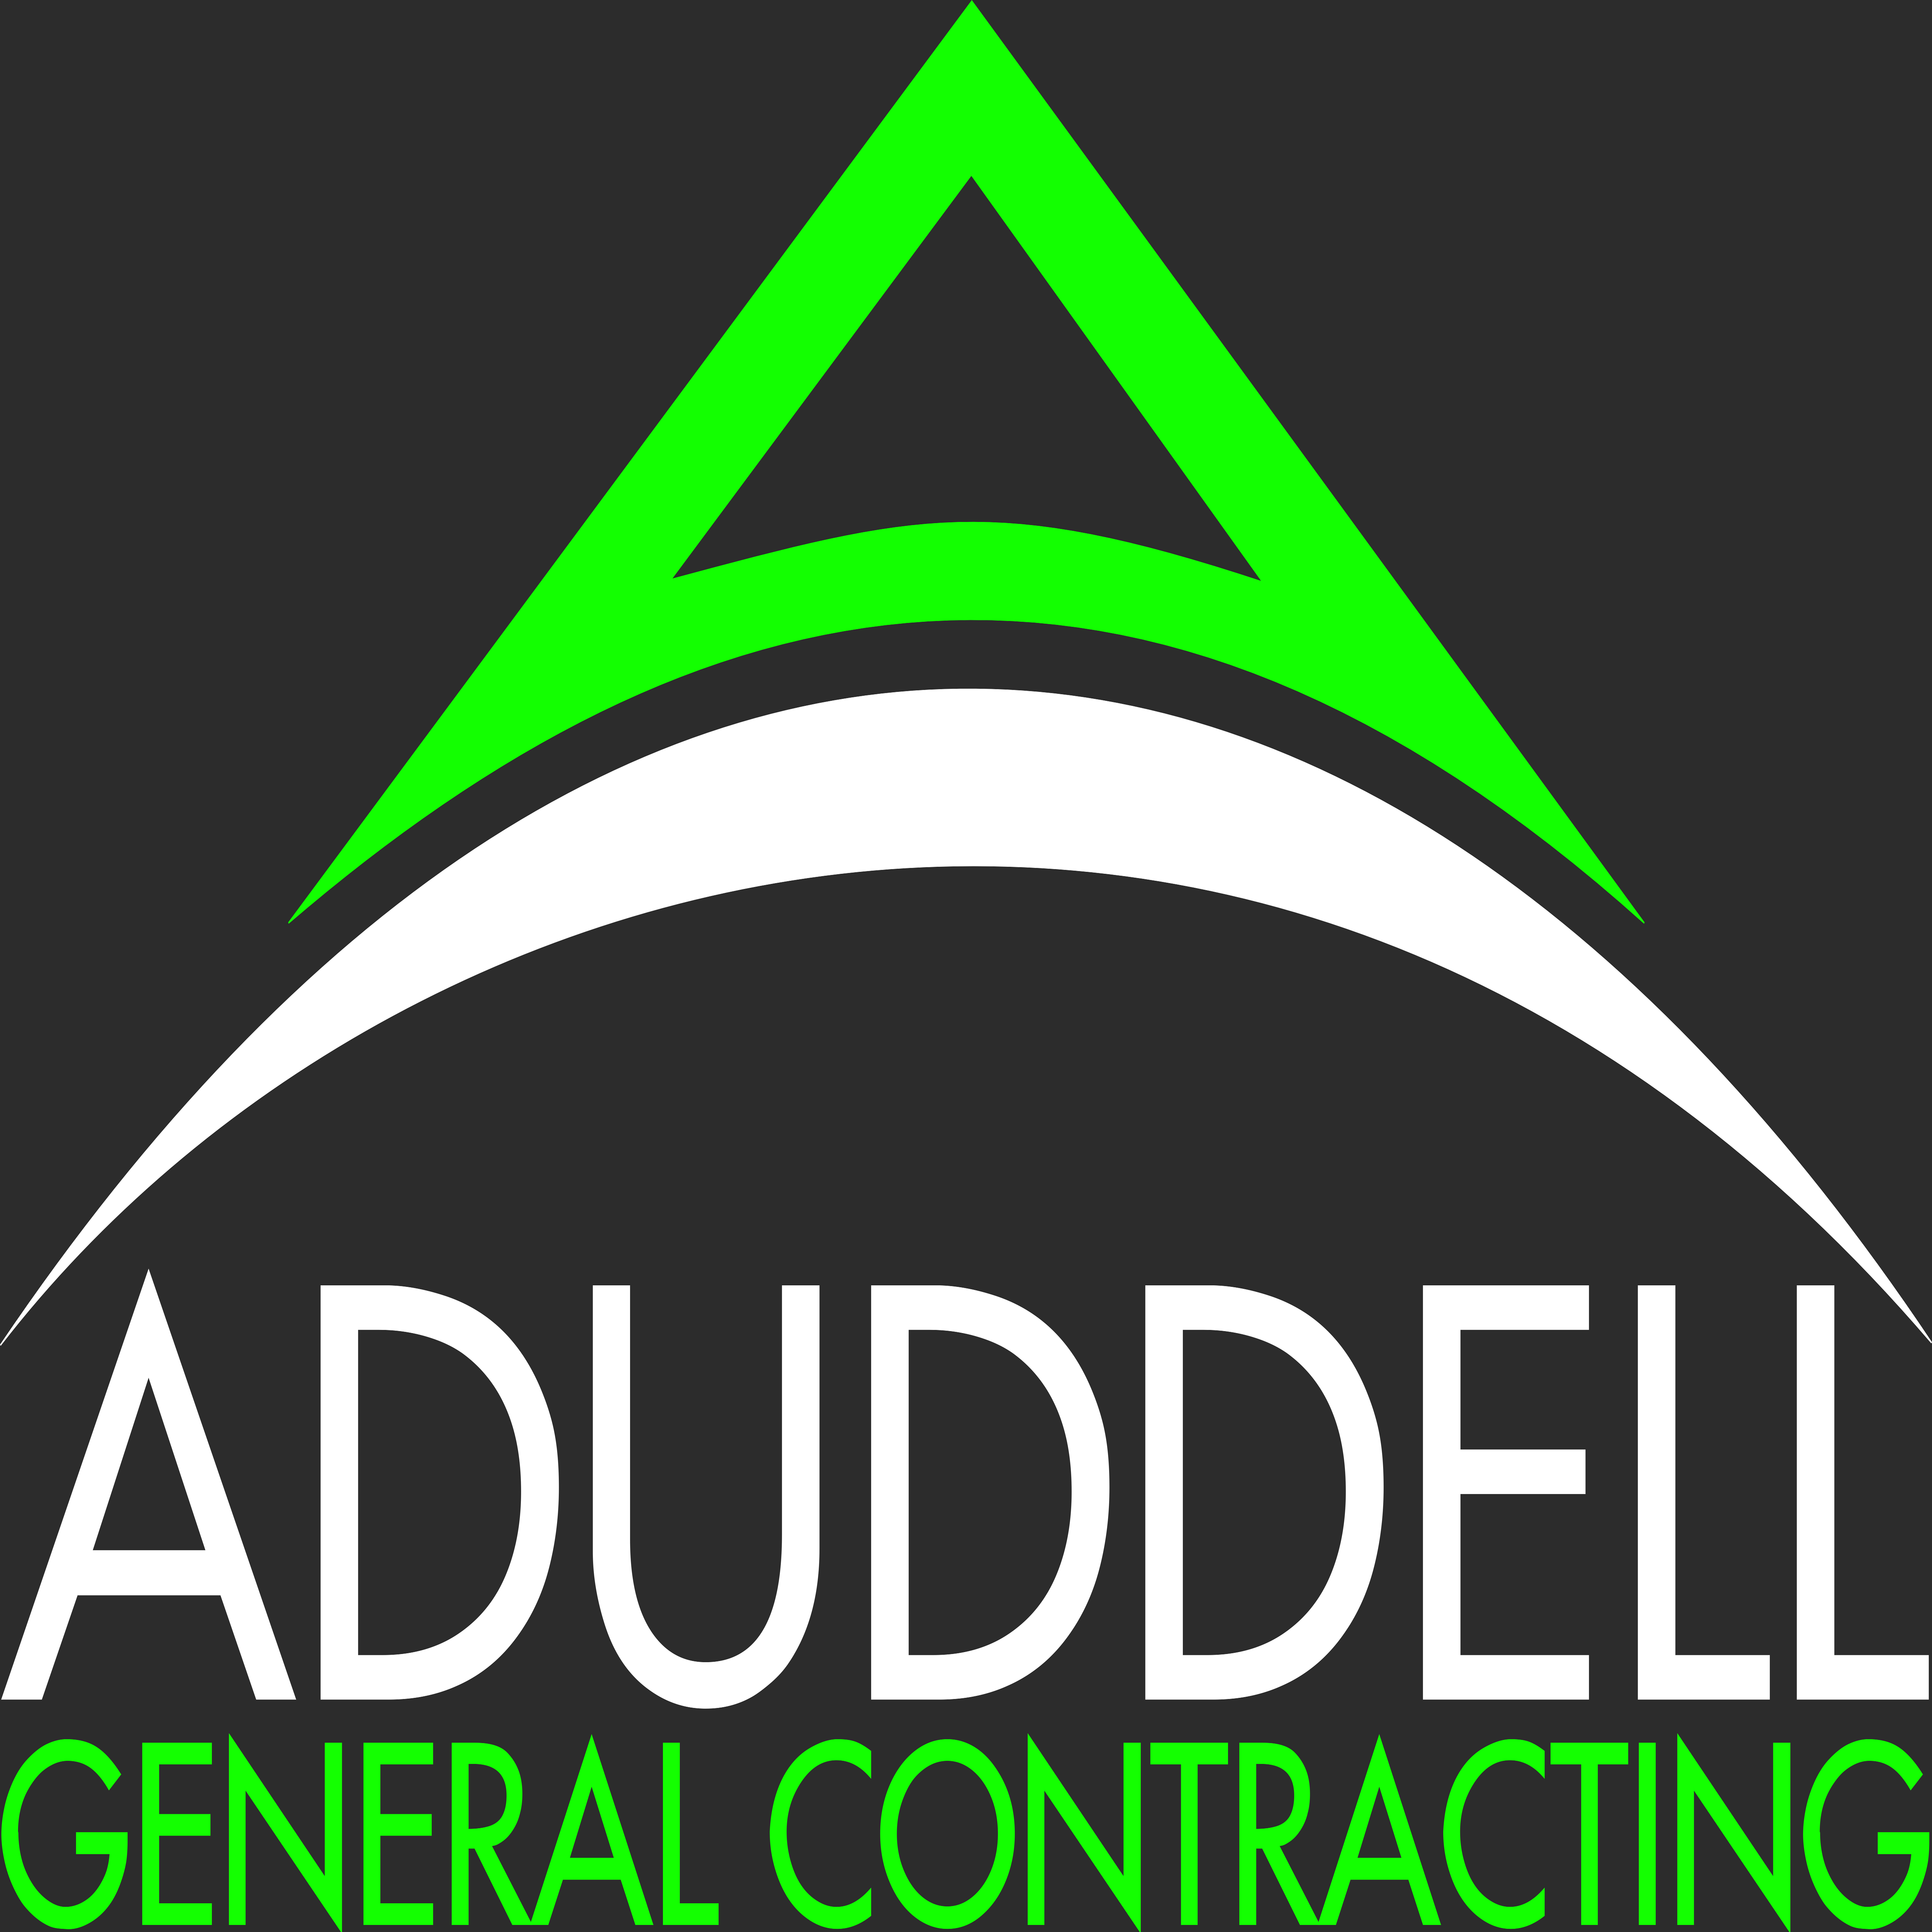 Aduddell General Contracting